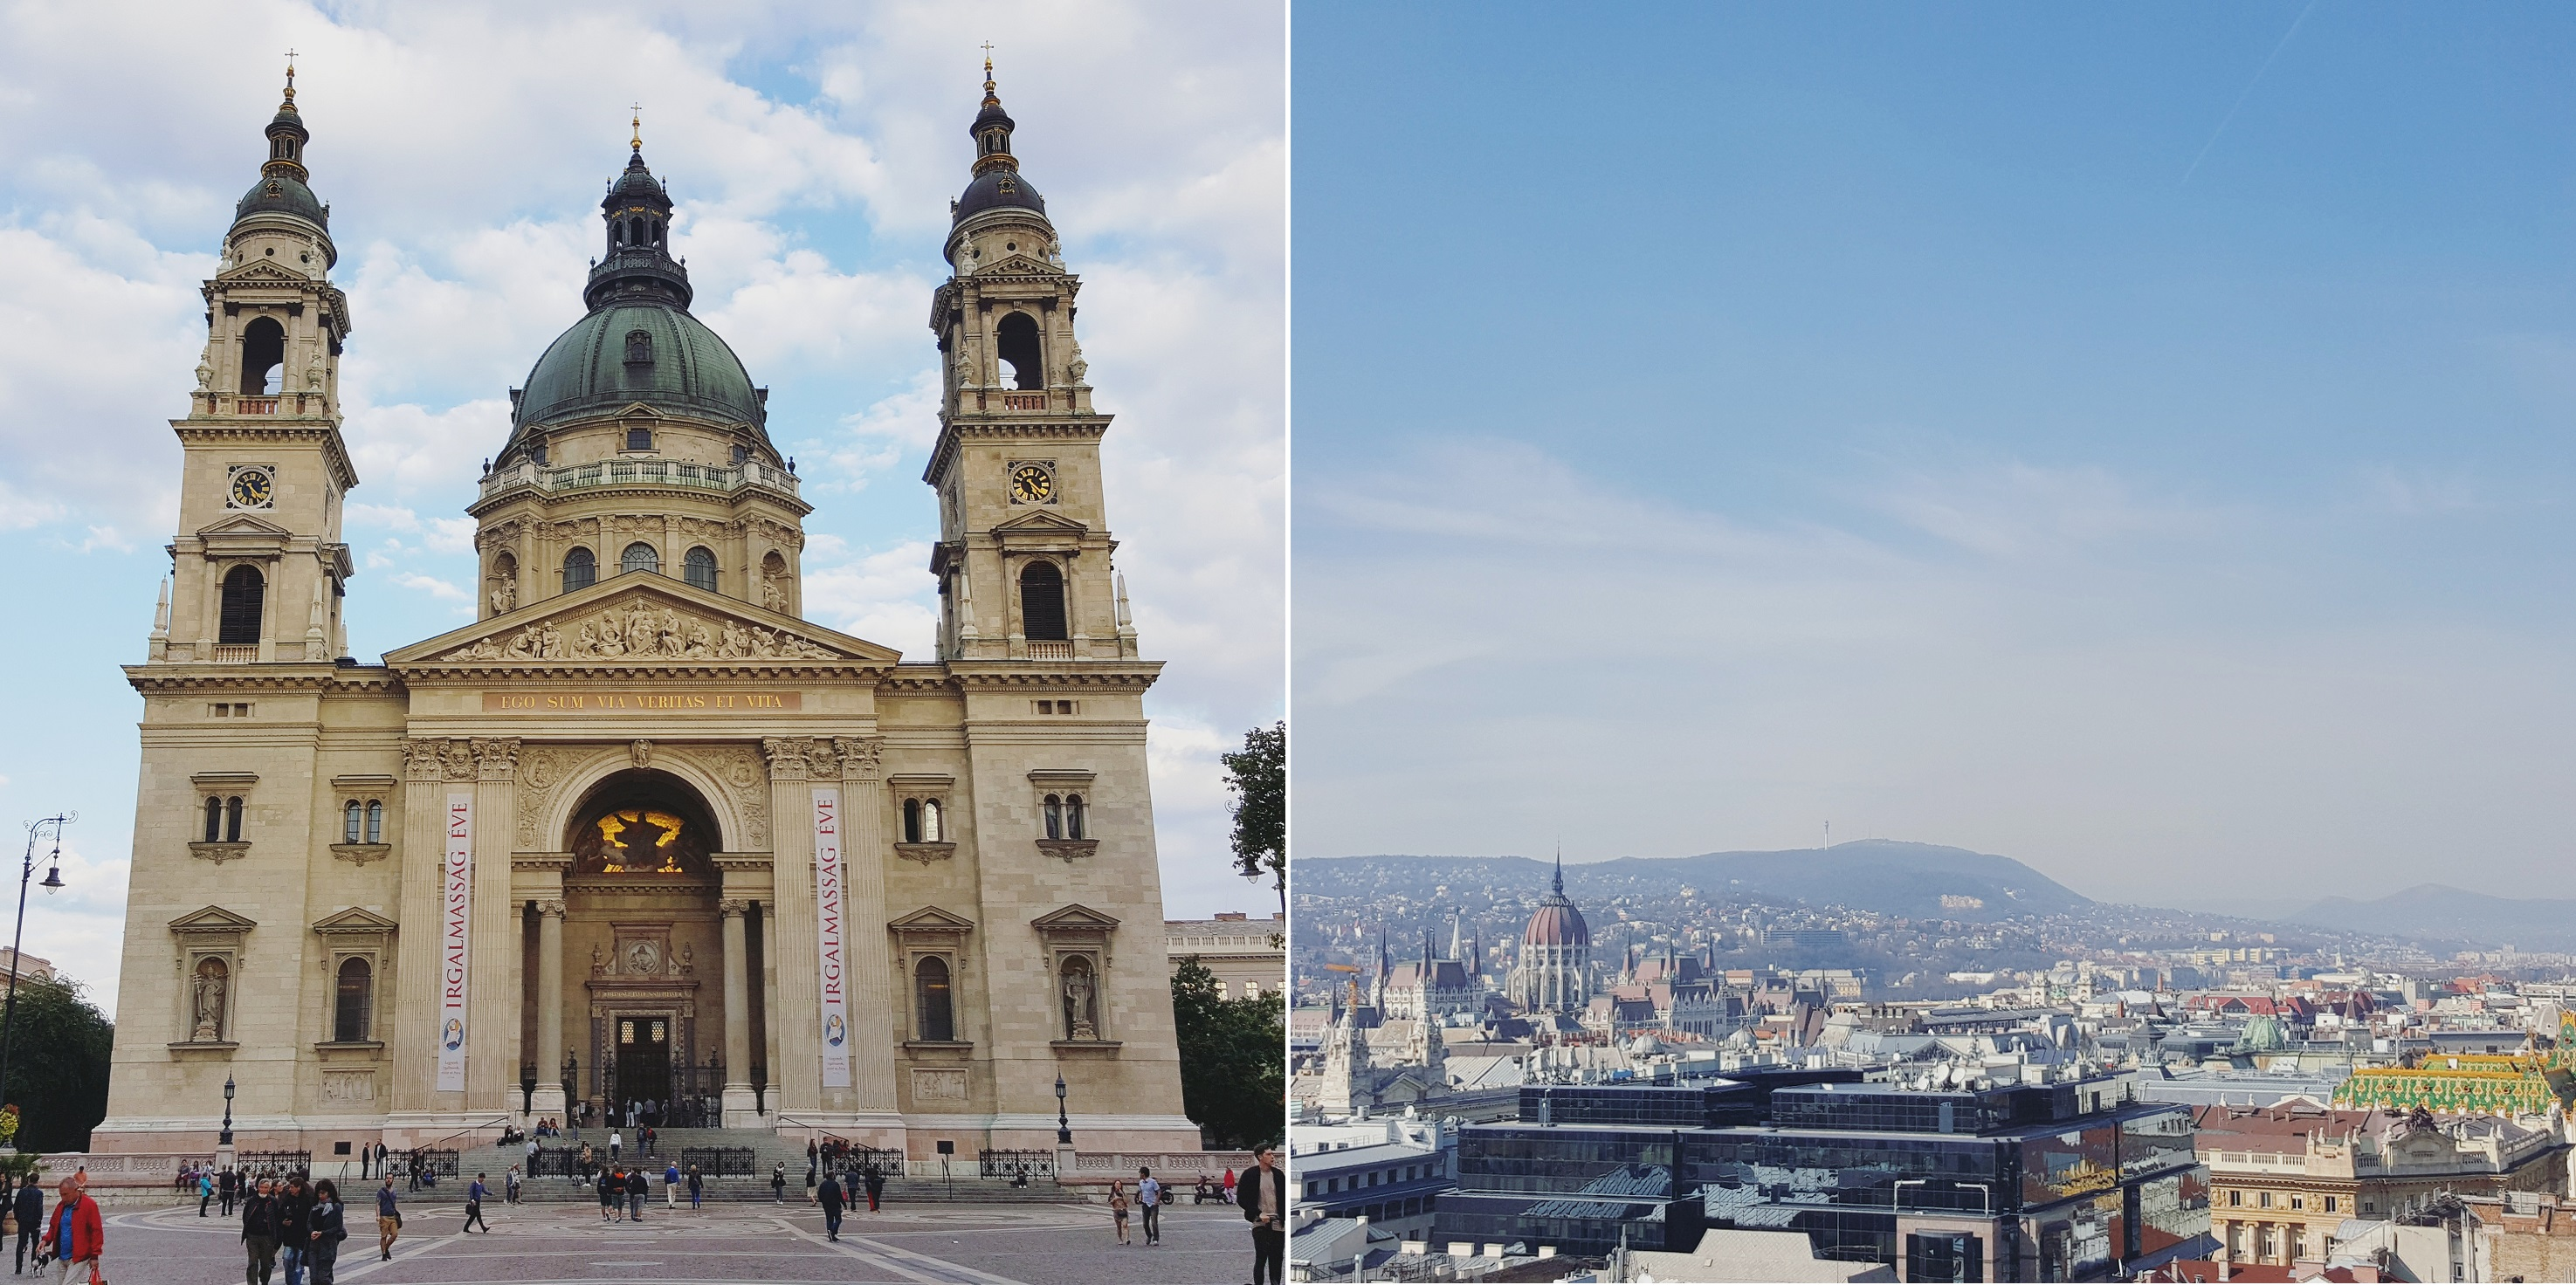 Looking for the most beautiful views in Budapest? I'm sharing the most gorgeous views in Budapest on todoinbudapest.com